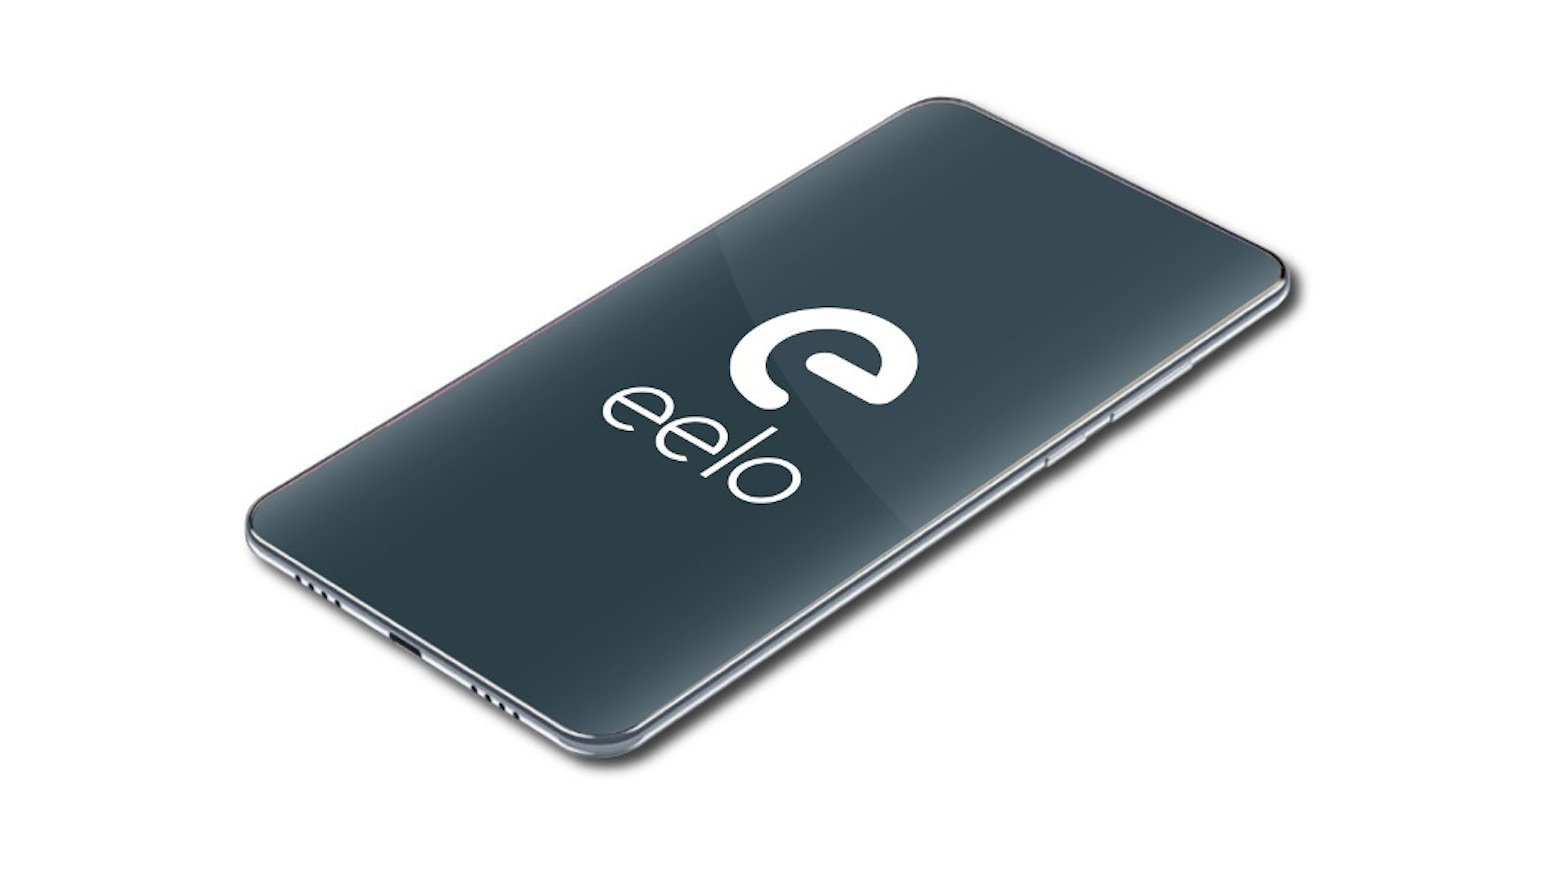 eelo is creating a desirable, privacy-enabled and open source mobile operating system, and associated web services.